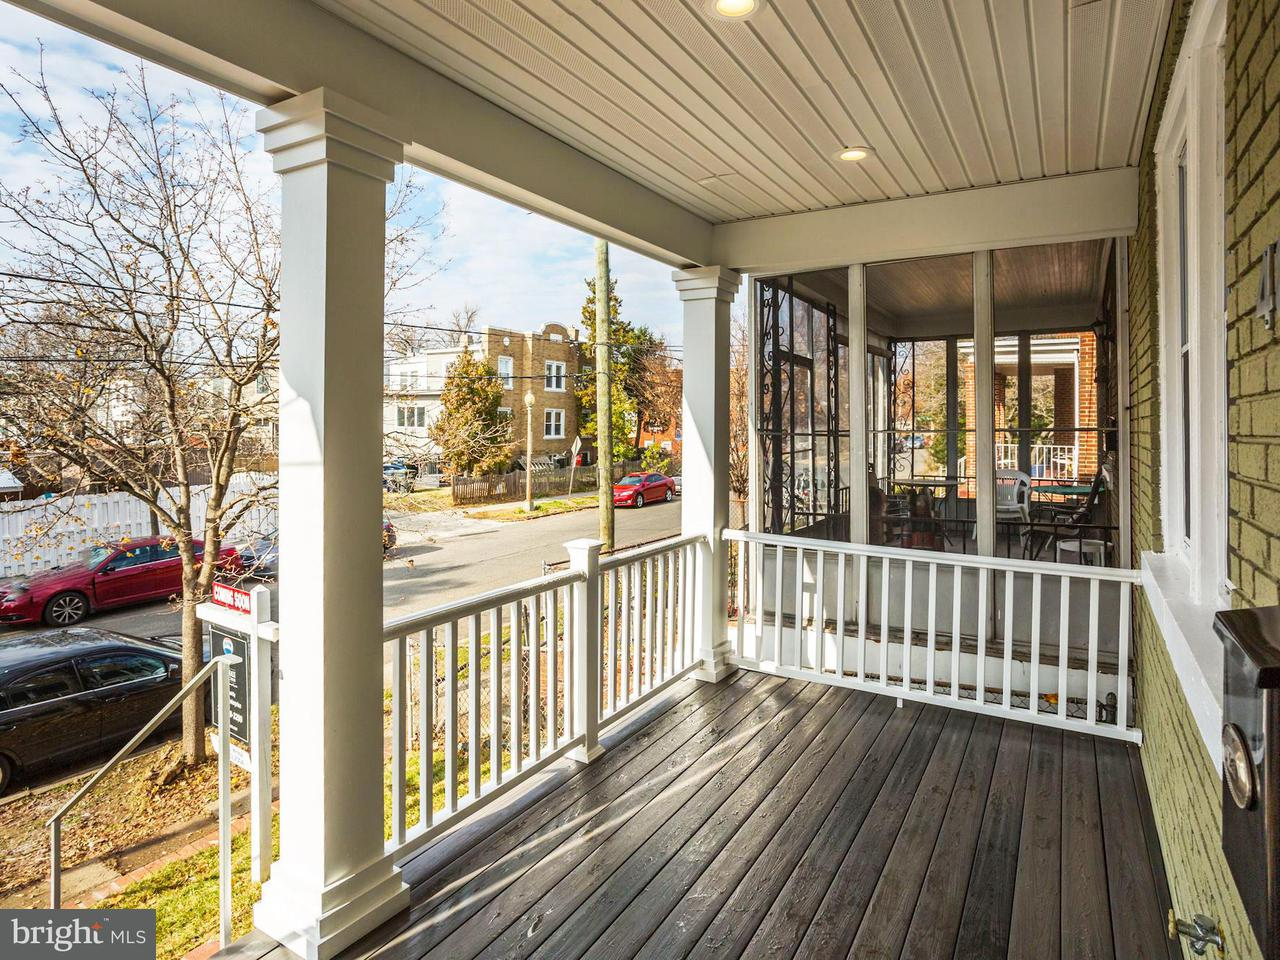 Additional photo for property listing at 4805 8th St Nw 4805 8th St Nw Washington, District De Columbia 20011 États-Unis